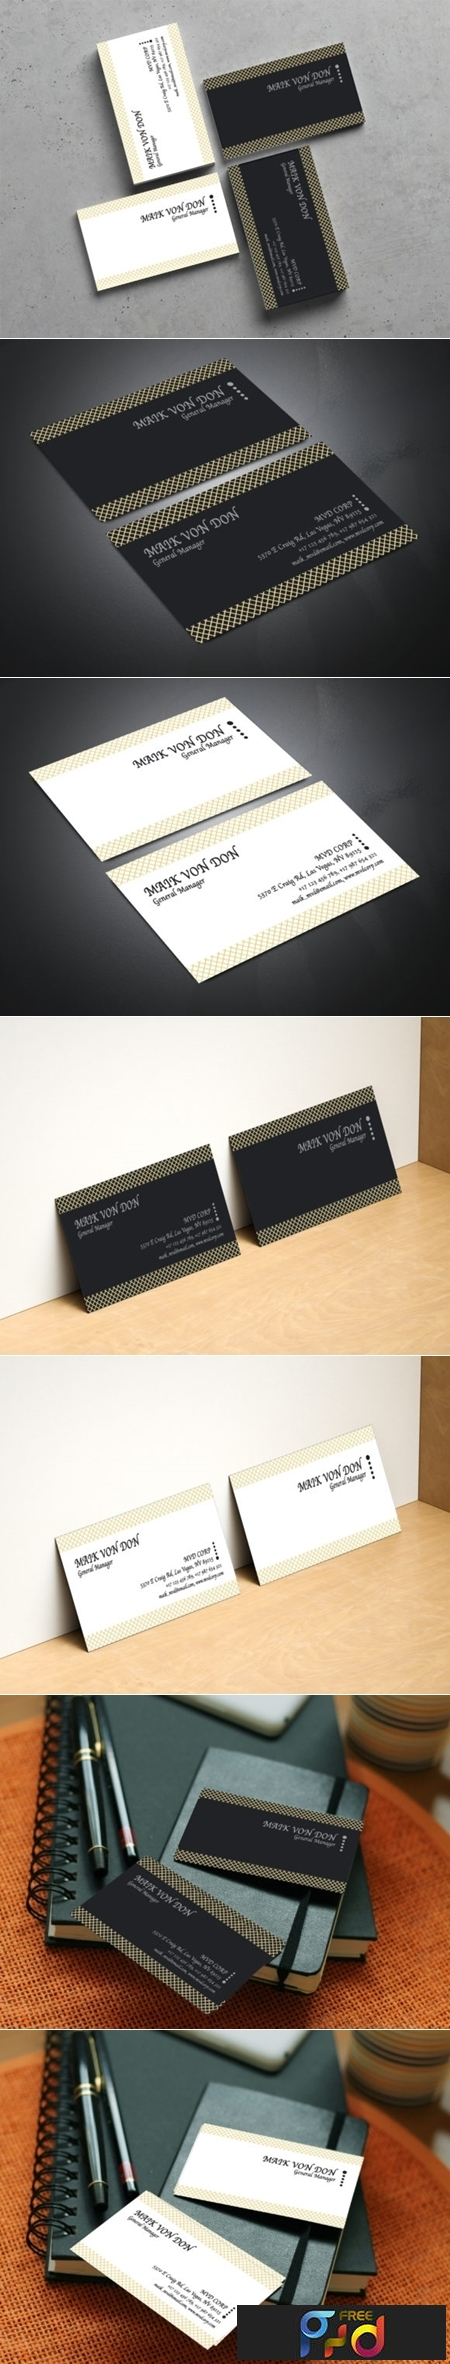 Business Card 959797 1